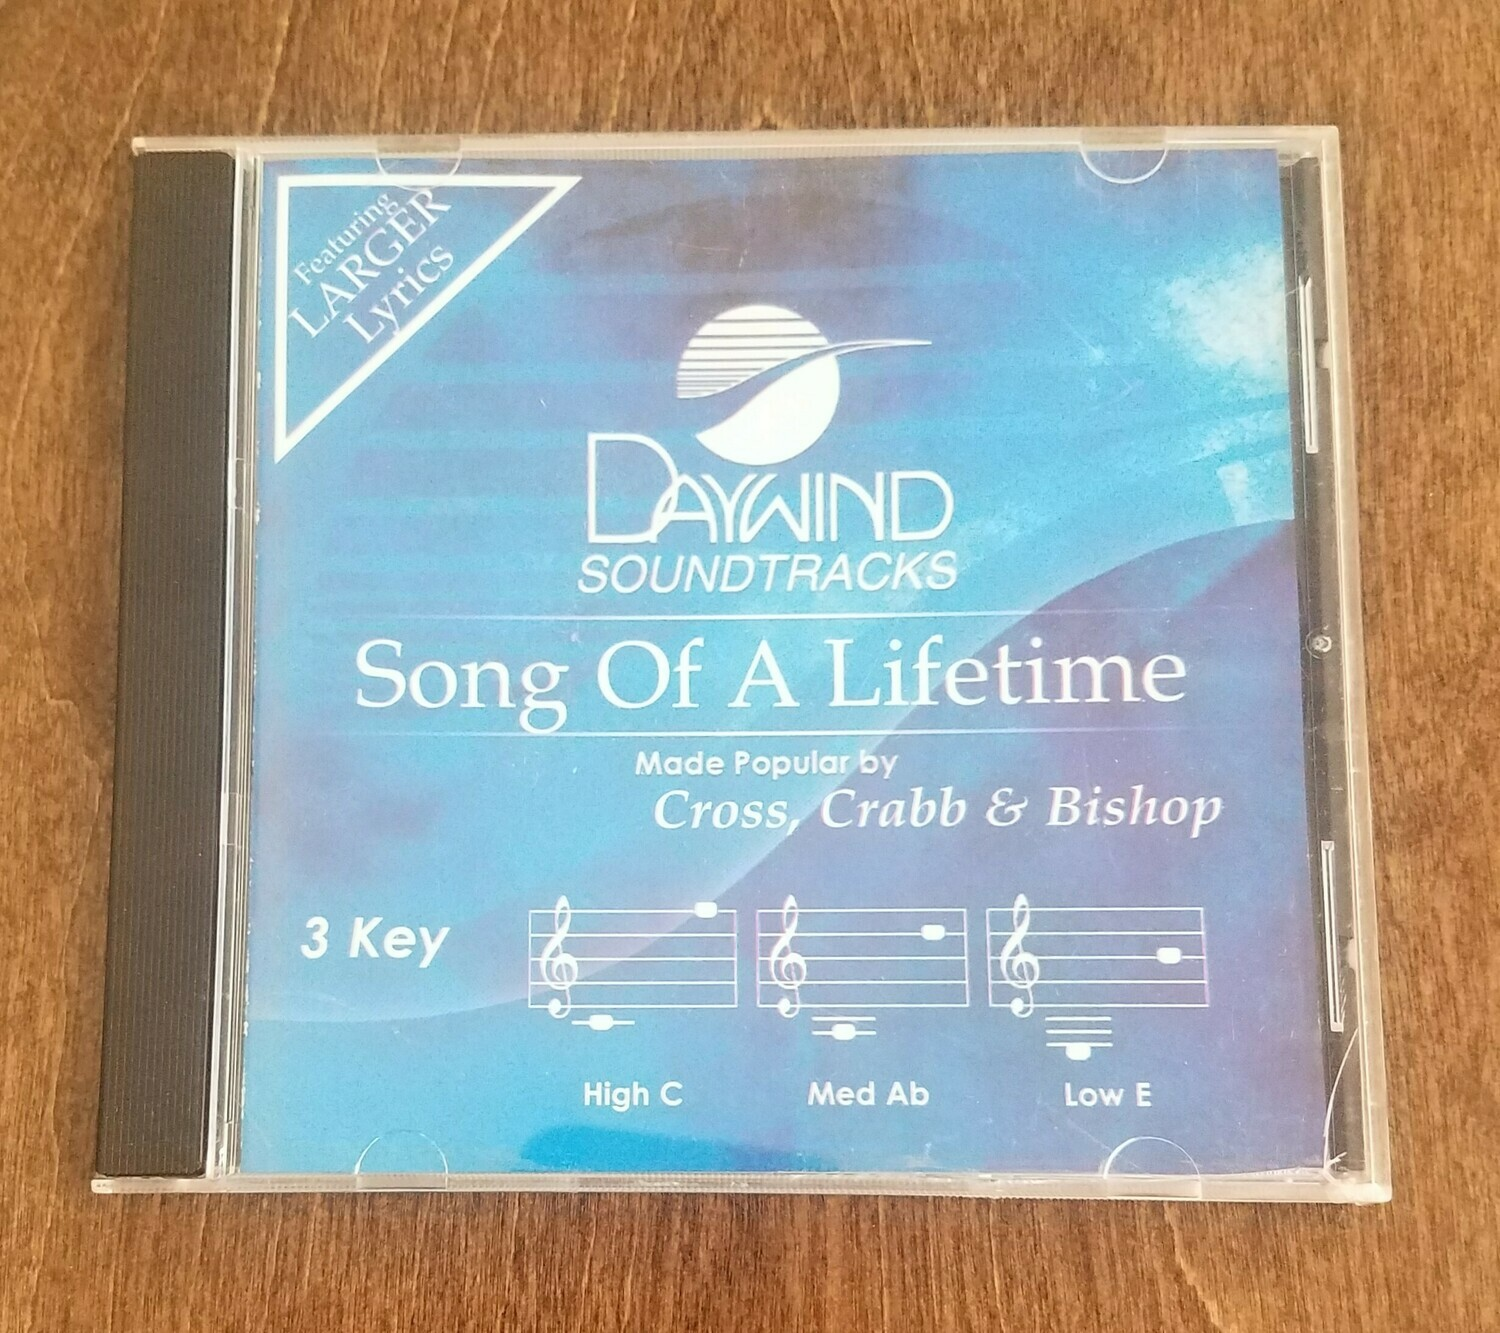 Song of a Lifetime CD